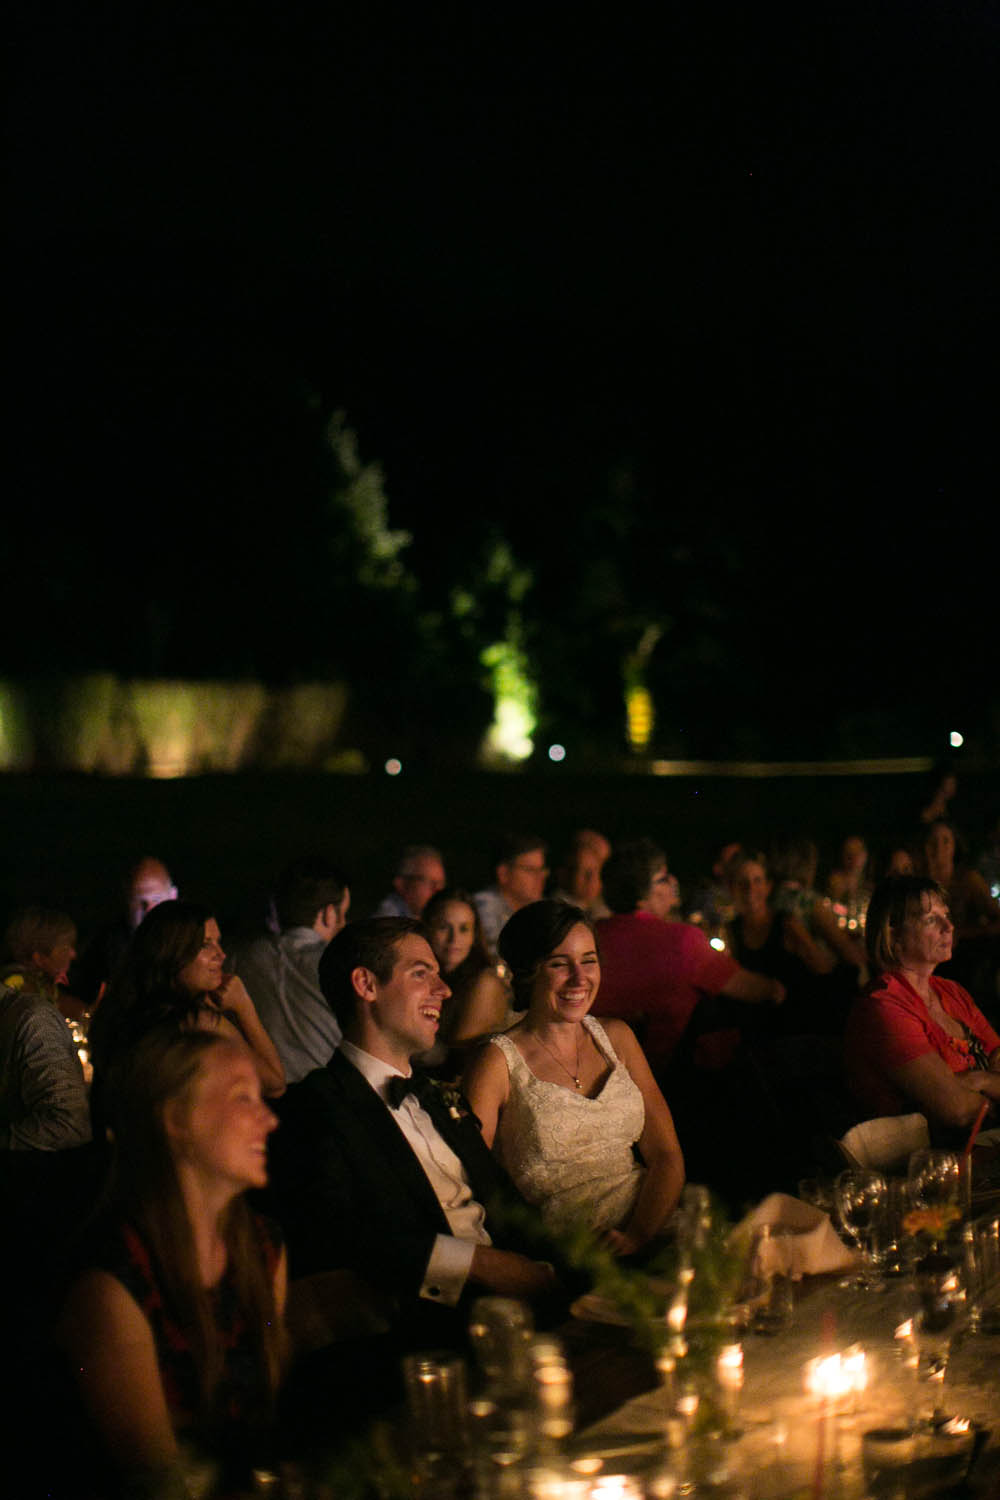 lilac farms at arrington vineyards classic film documentary wedding photographer in franklin real moments photographers ©2016abigailbobophotography-69.jpg